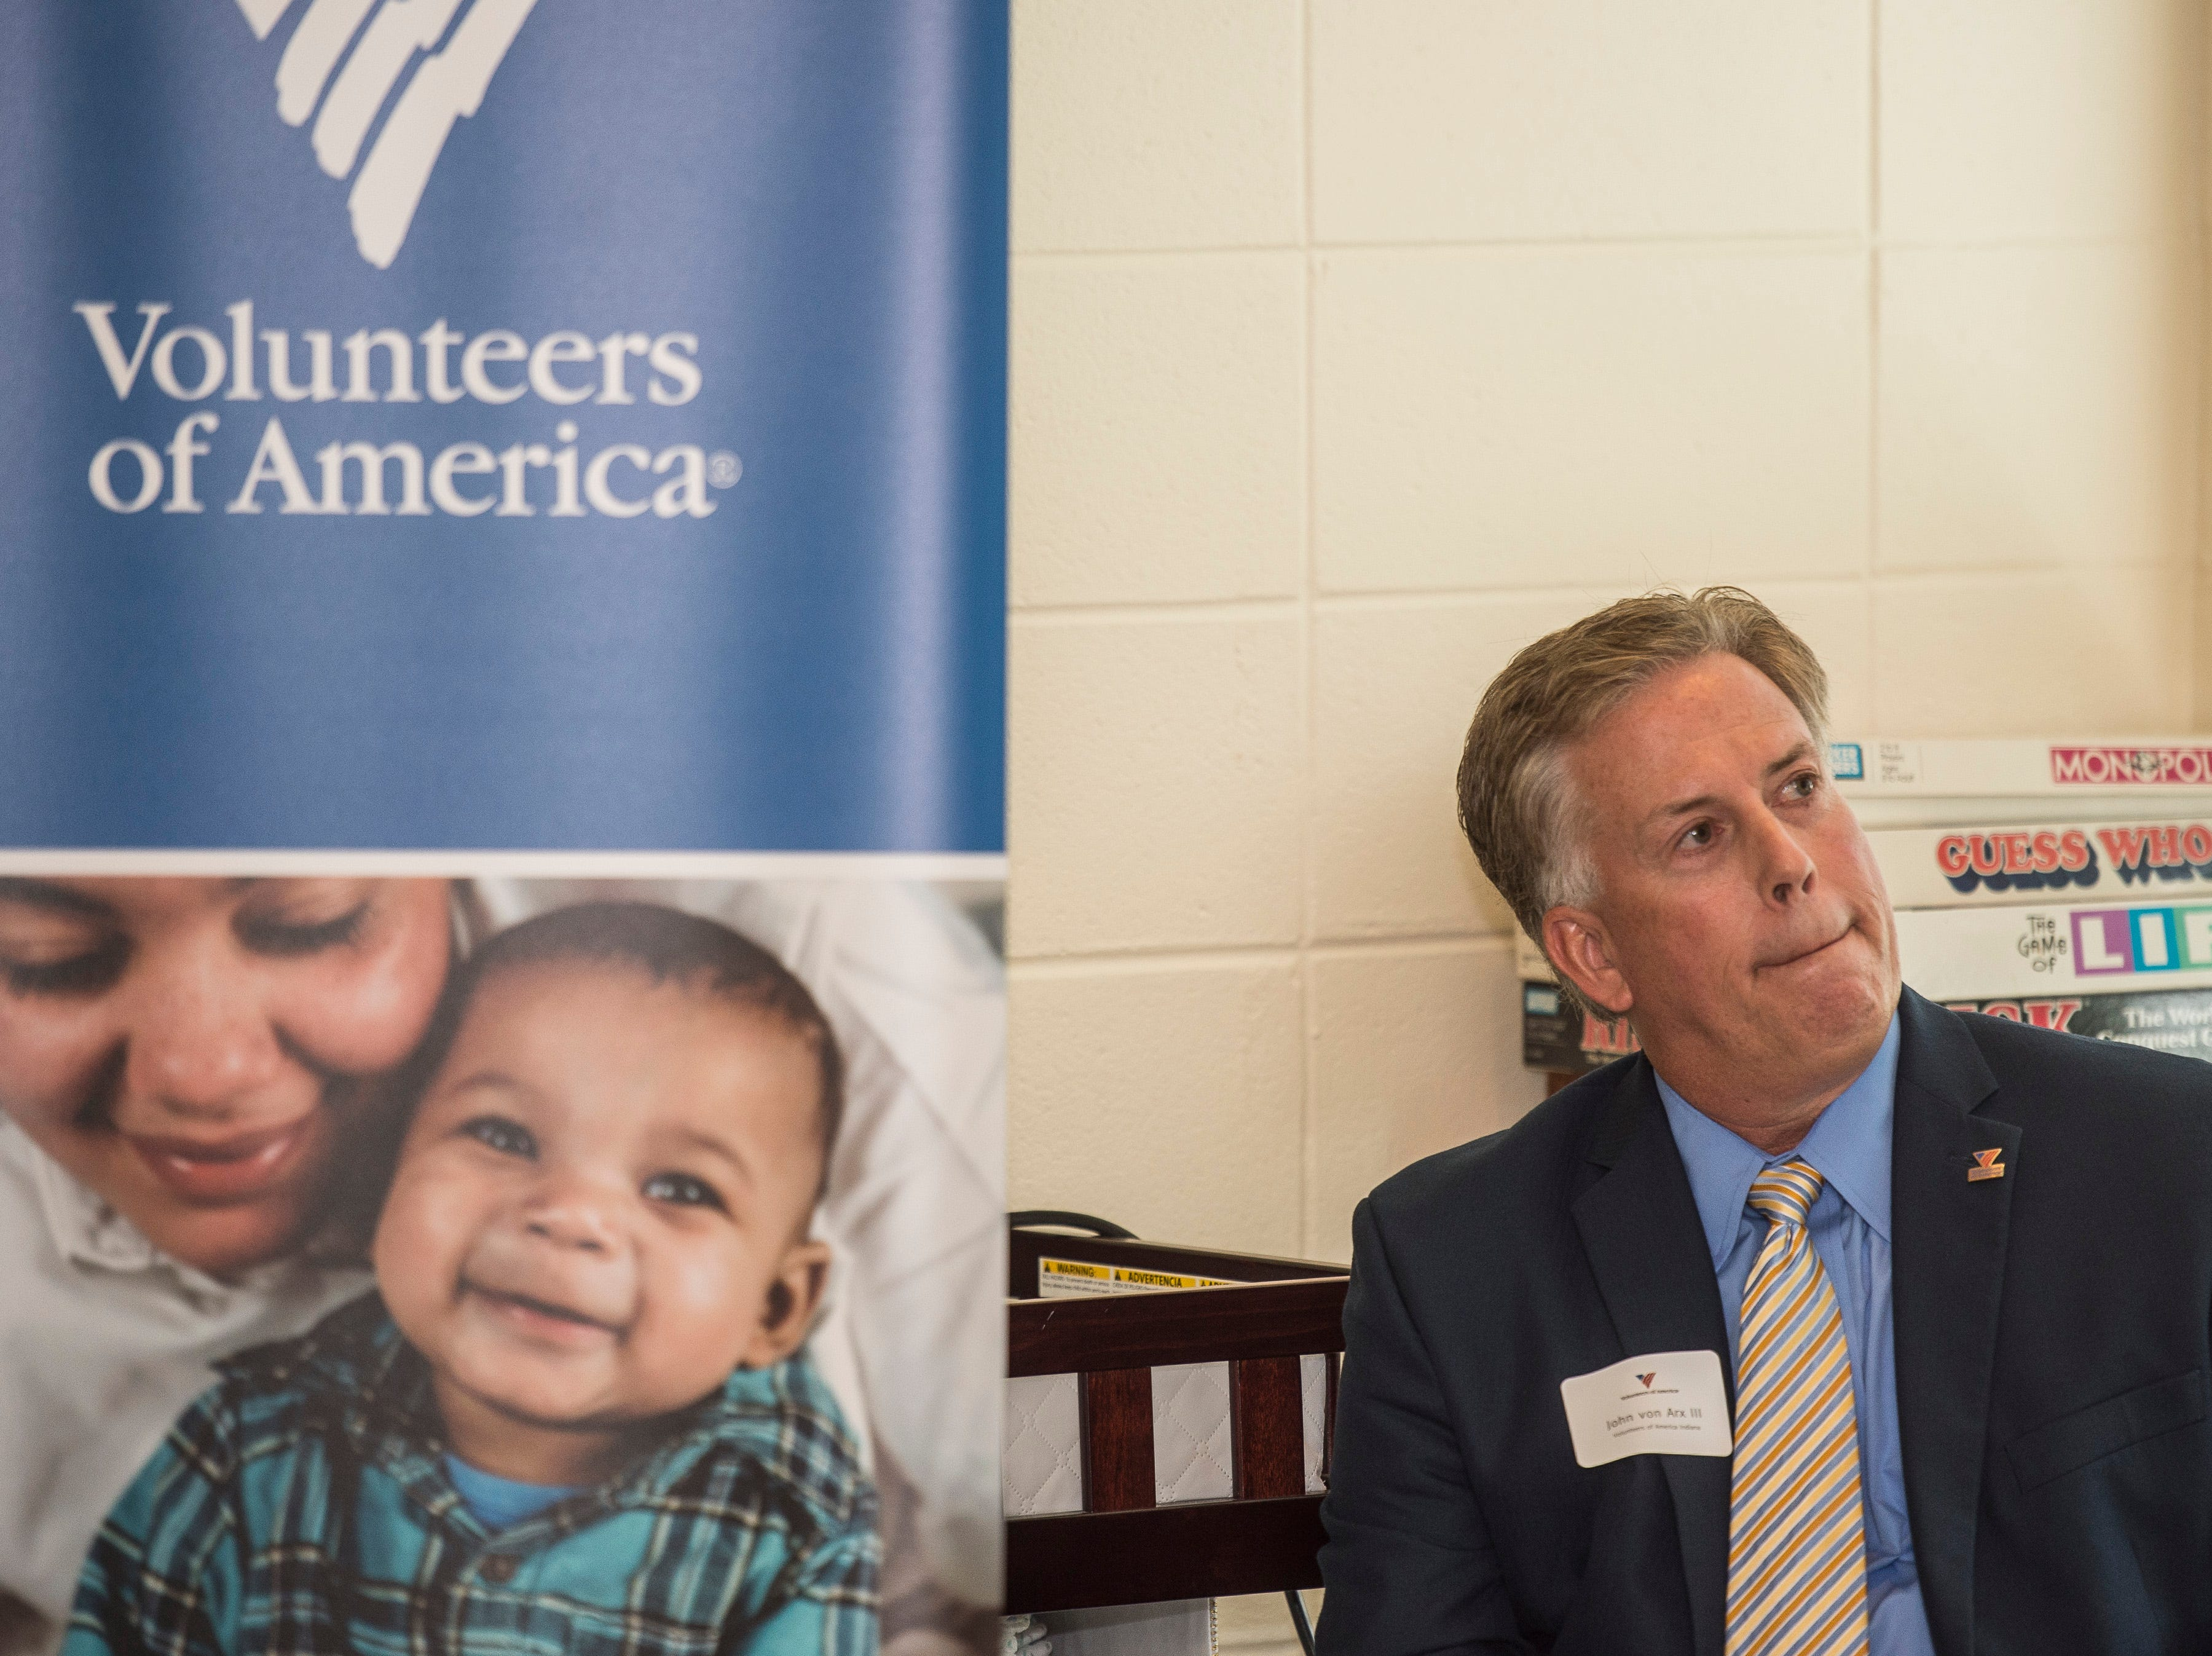 Volunteers of America Indiana president John Von Arx listens during a news conference celebrating the opening of the Winchester House, a new drug treatment facility for women, in Winchester, Ind., on Wednesday, Aug. 1, 2018.